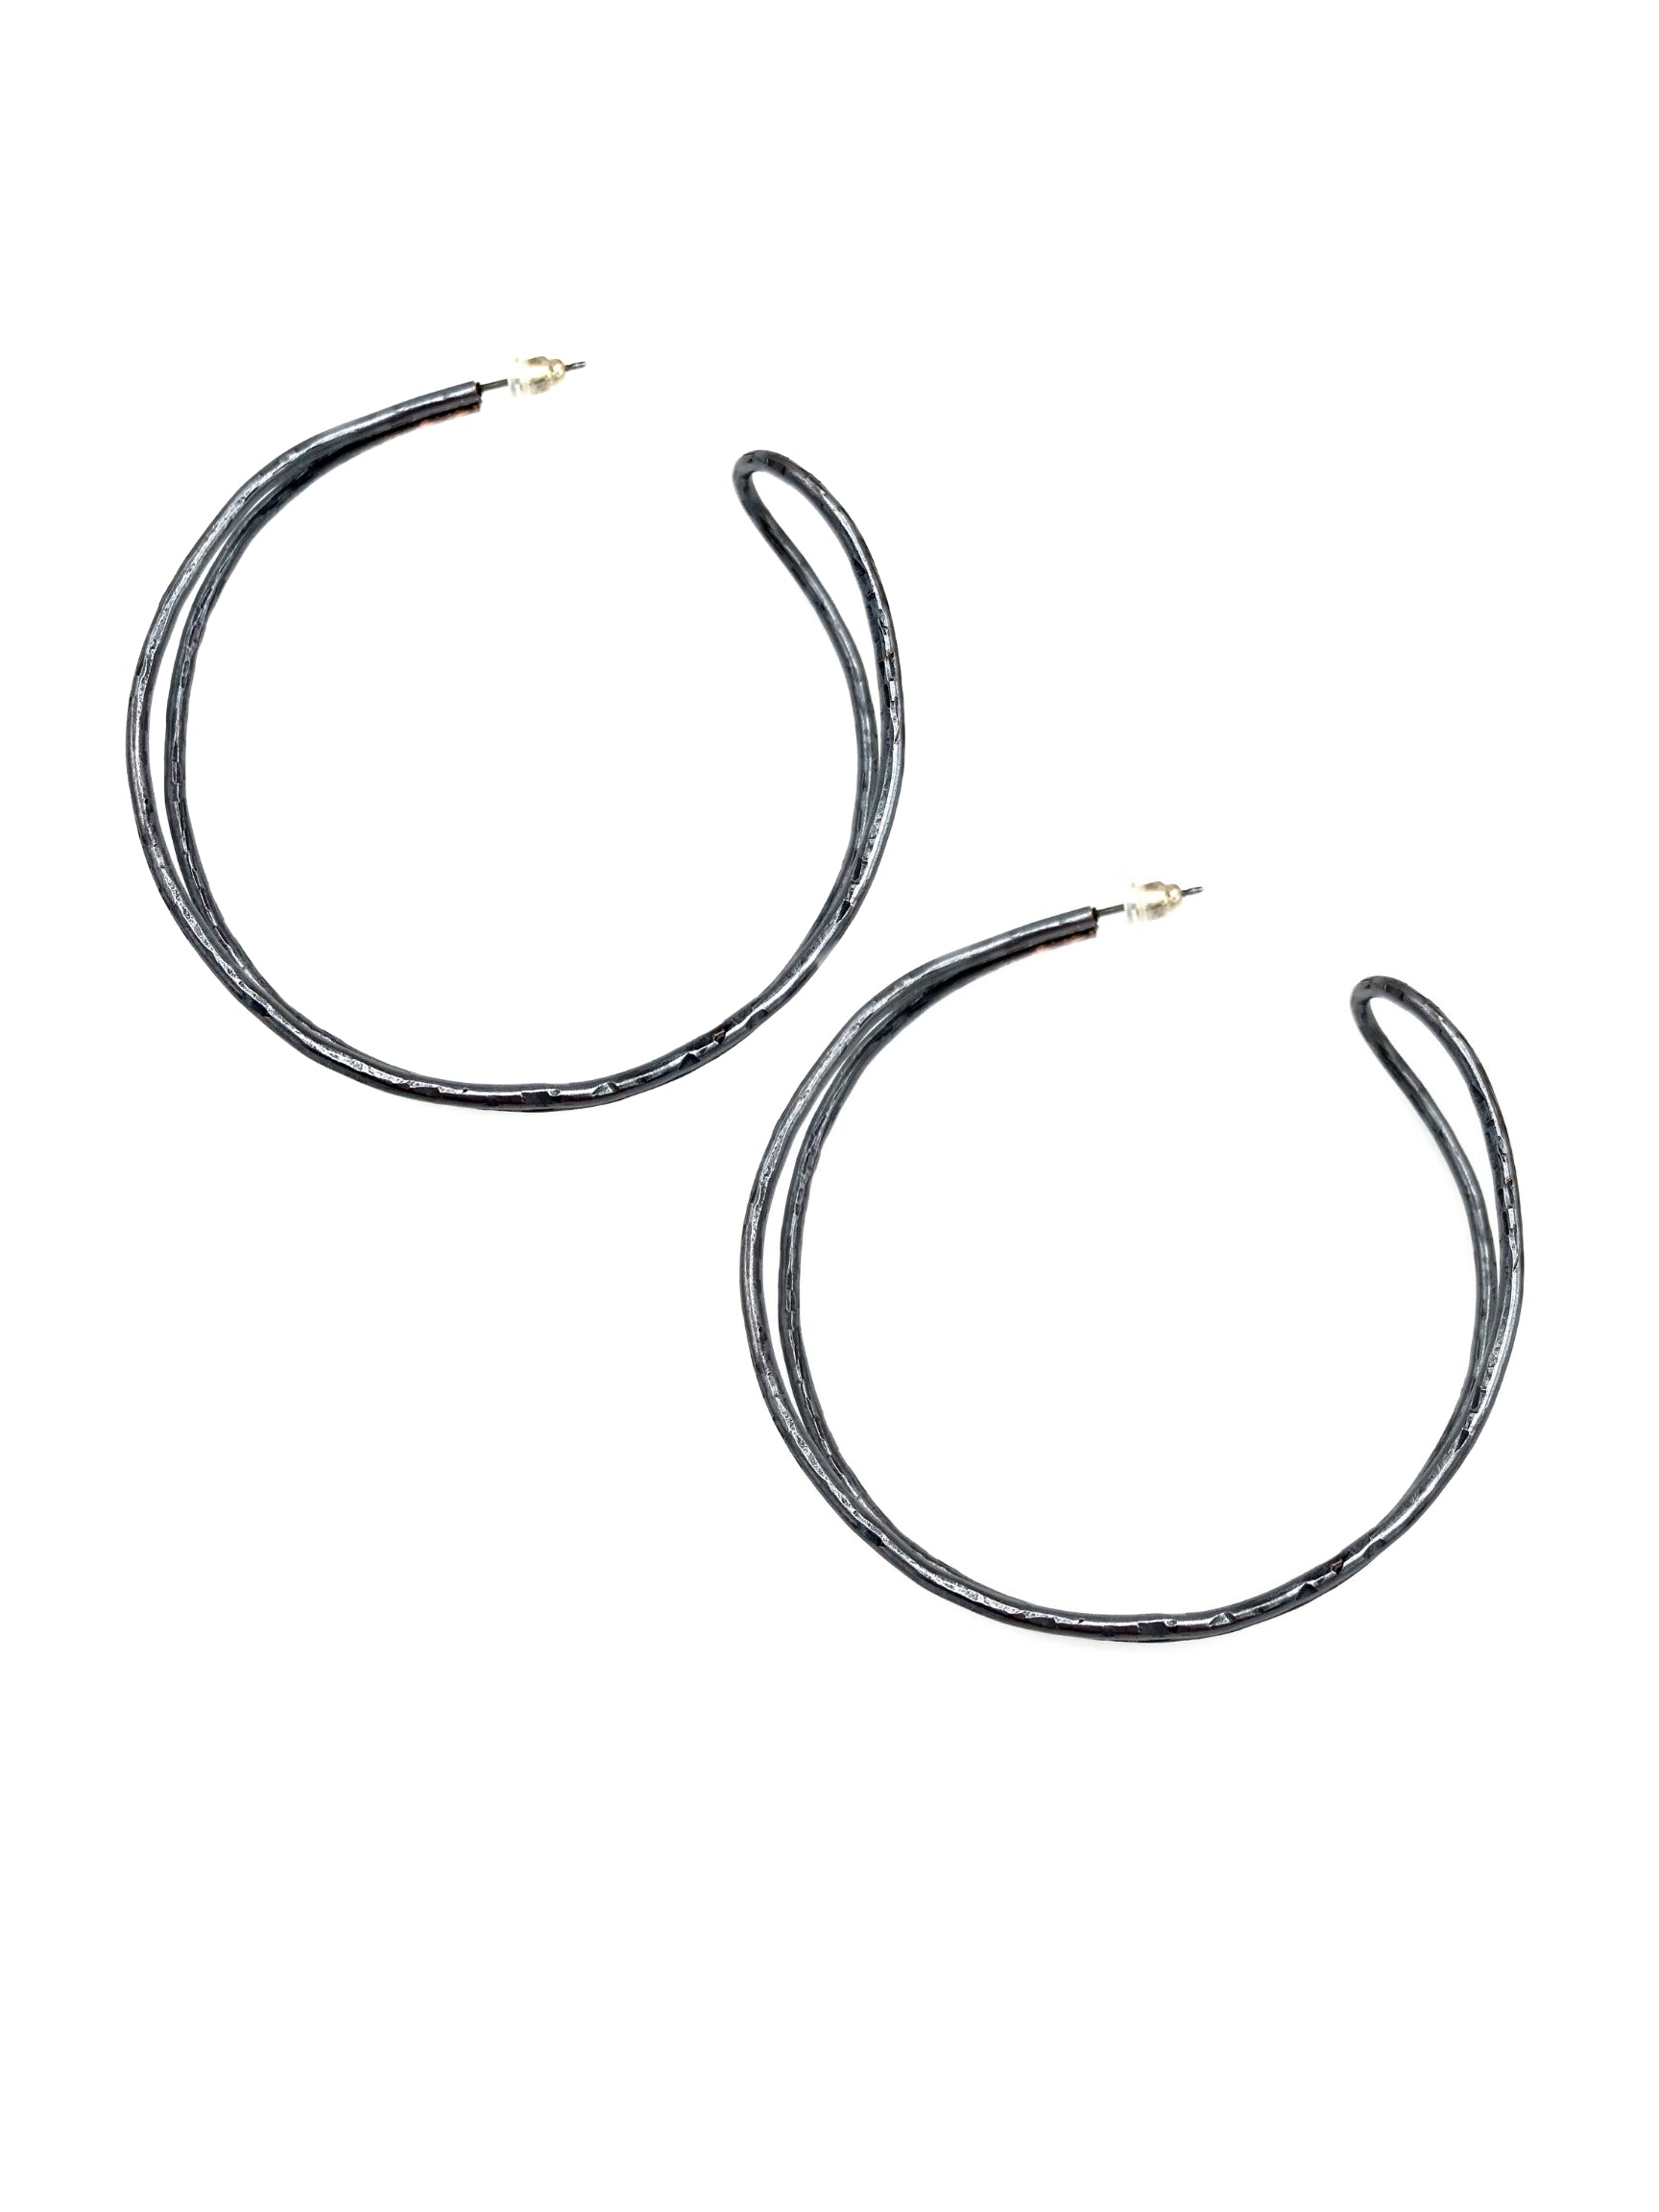 Patina Mimi Hoop Earrings-Earrings-JAREDJAMIN Jewelry Online-JARED JAMIN